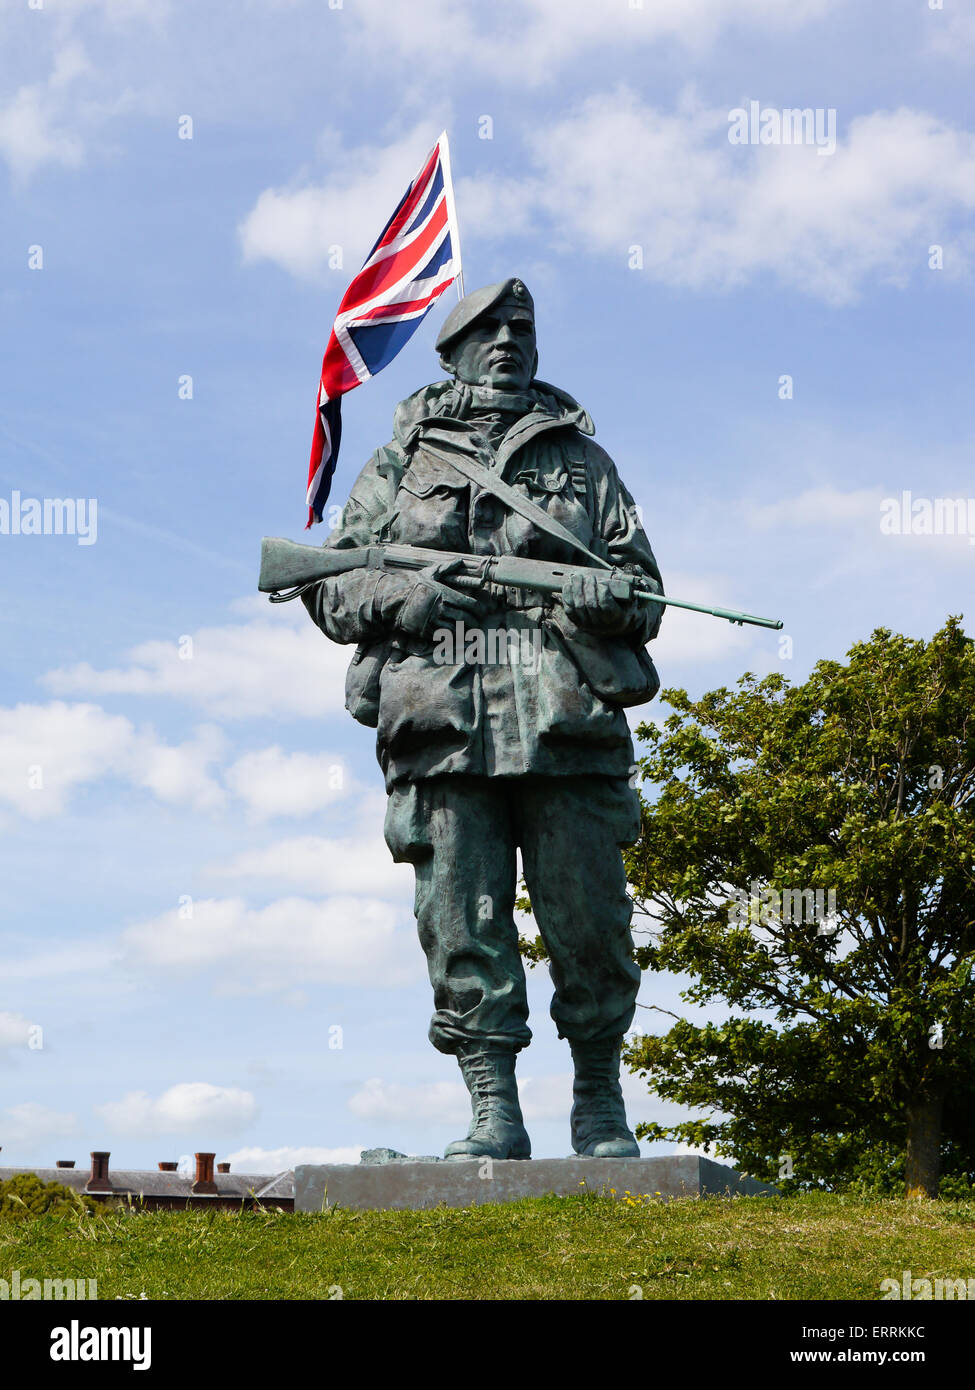 the-yomper-memorial-by-sculptor-philip-jackson-outside-the-royal-marines-ERRKKC.jpg